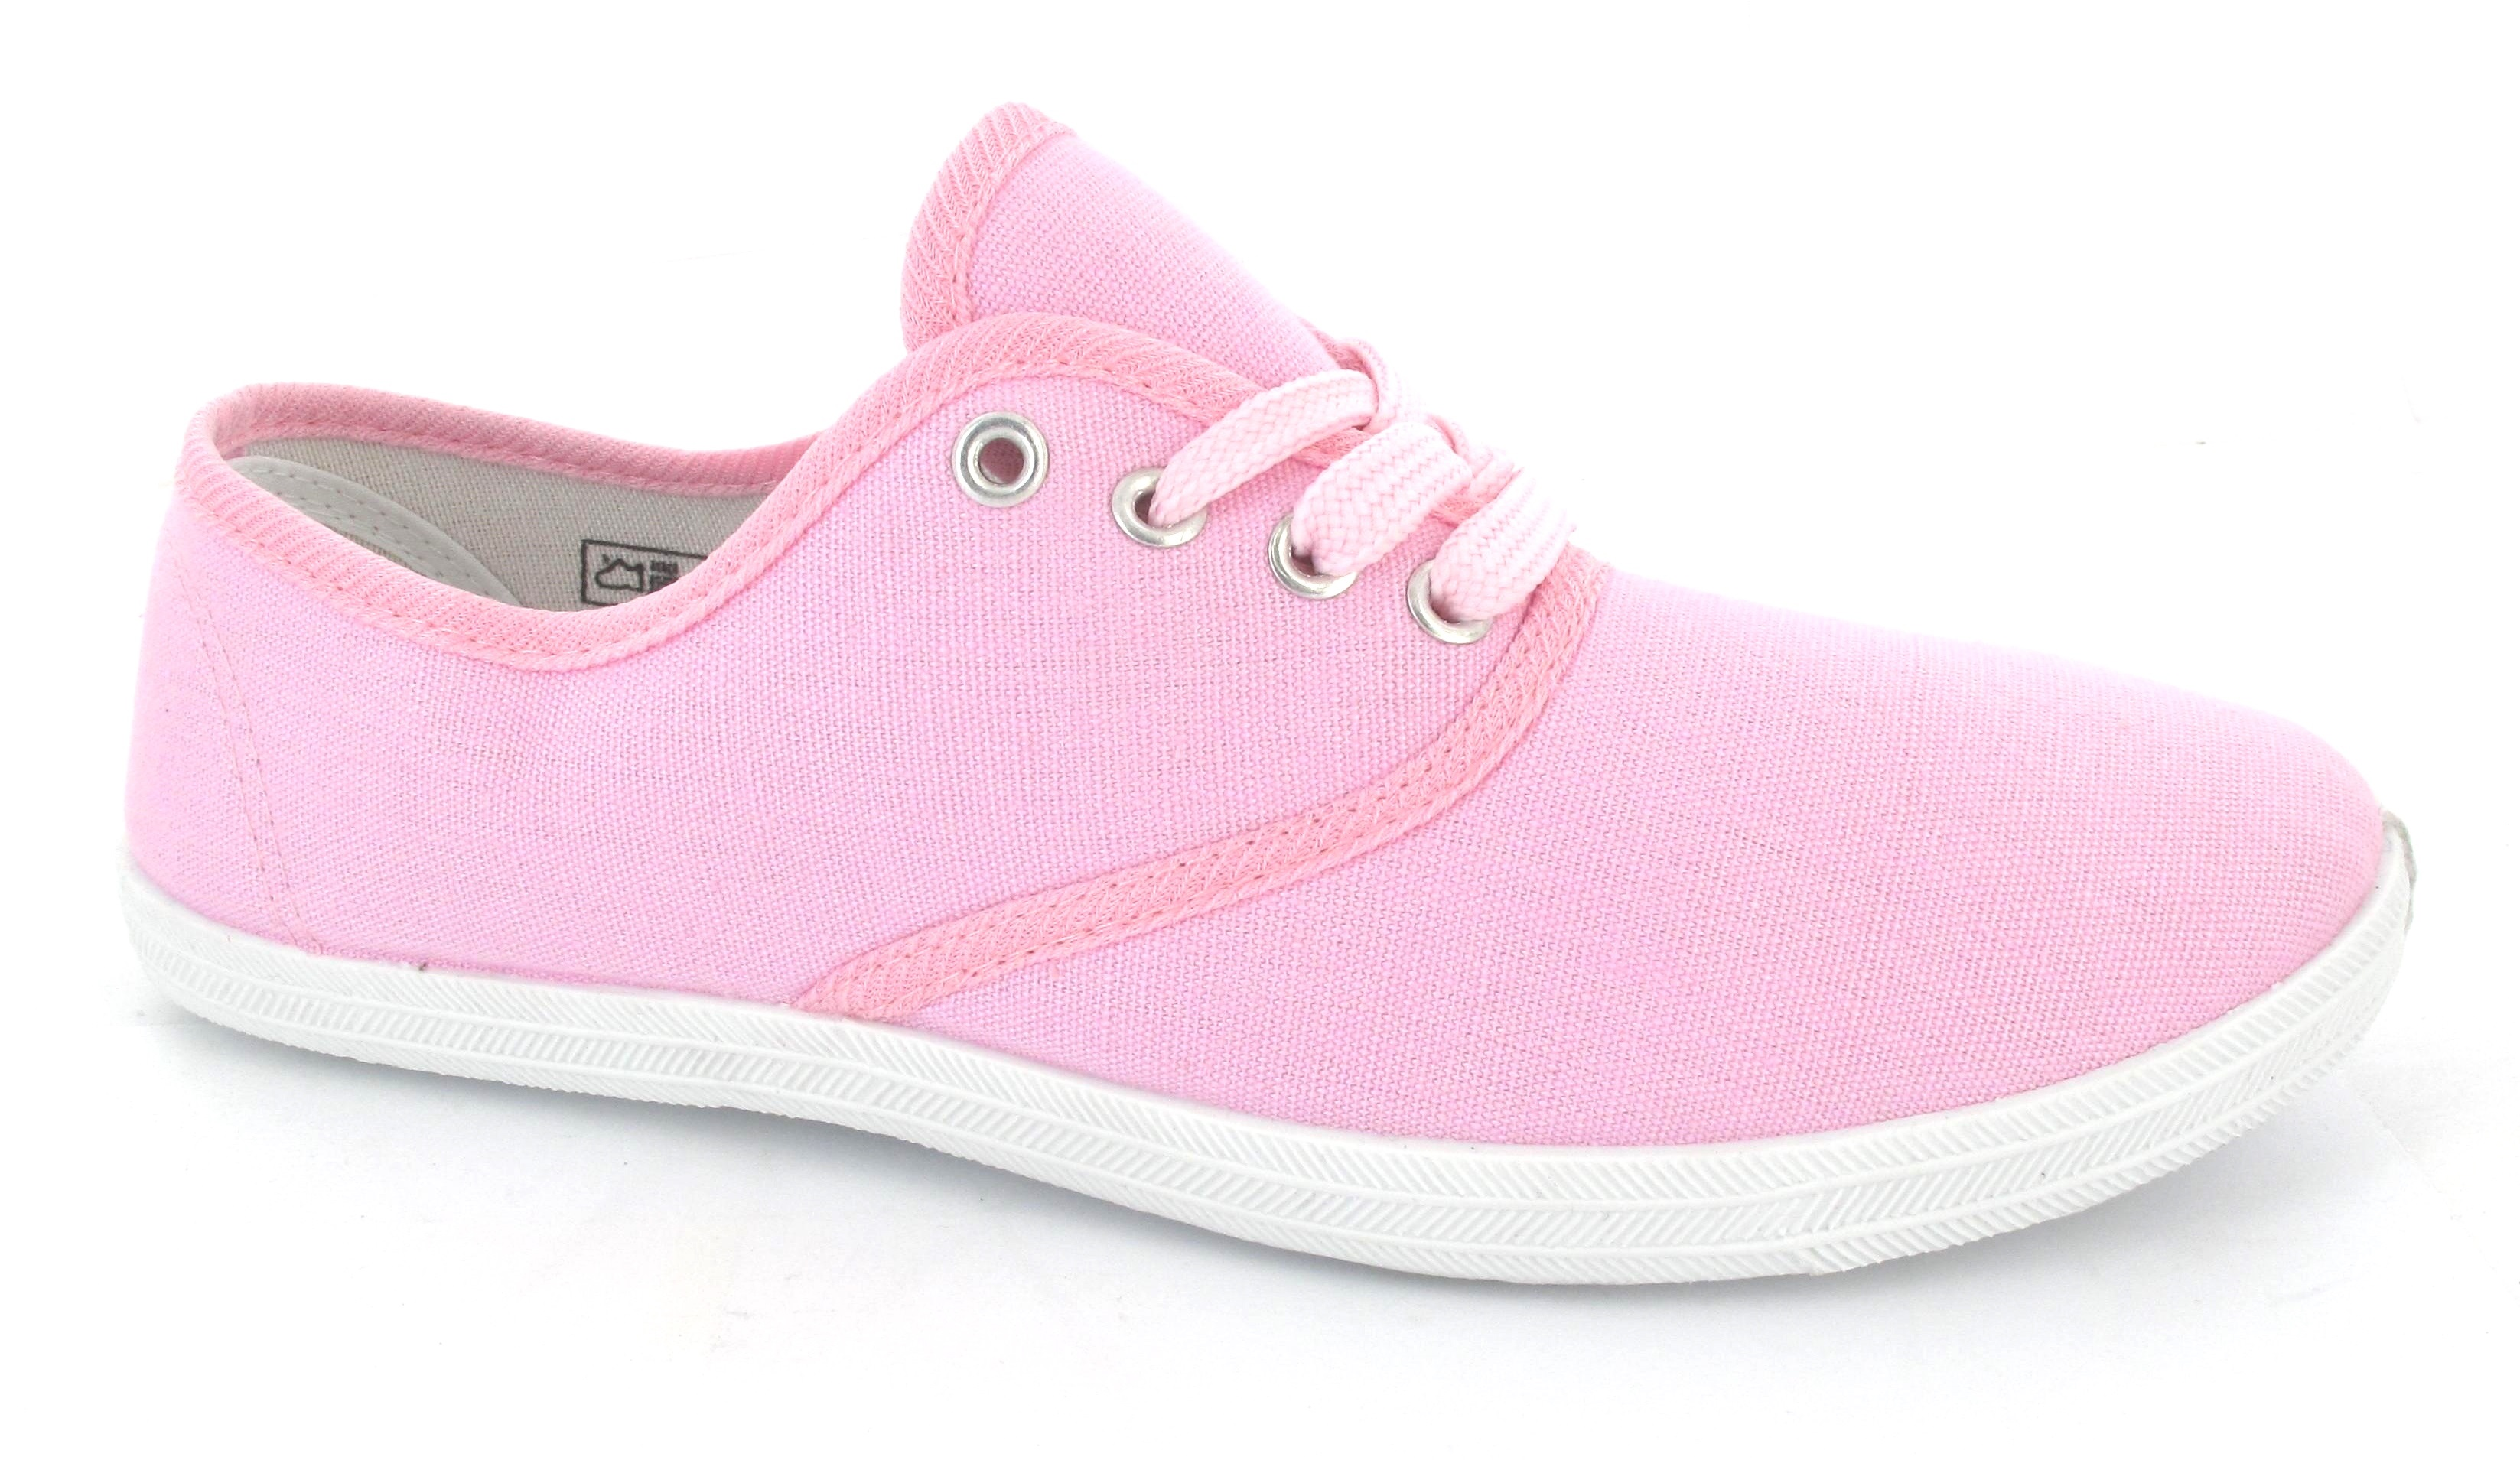 Choose from classic girls' black trainers that combo effortless with any street look or sports uniform, to slip-on trainers for easy wear. Whether you're looking for girls' plimsolls for everyday wear or lace up rose gold trainers for some added shine, you'll find your fit in our range of sports shoes.